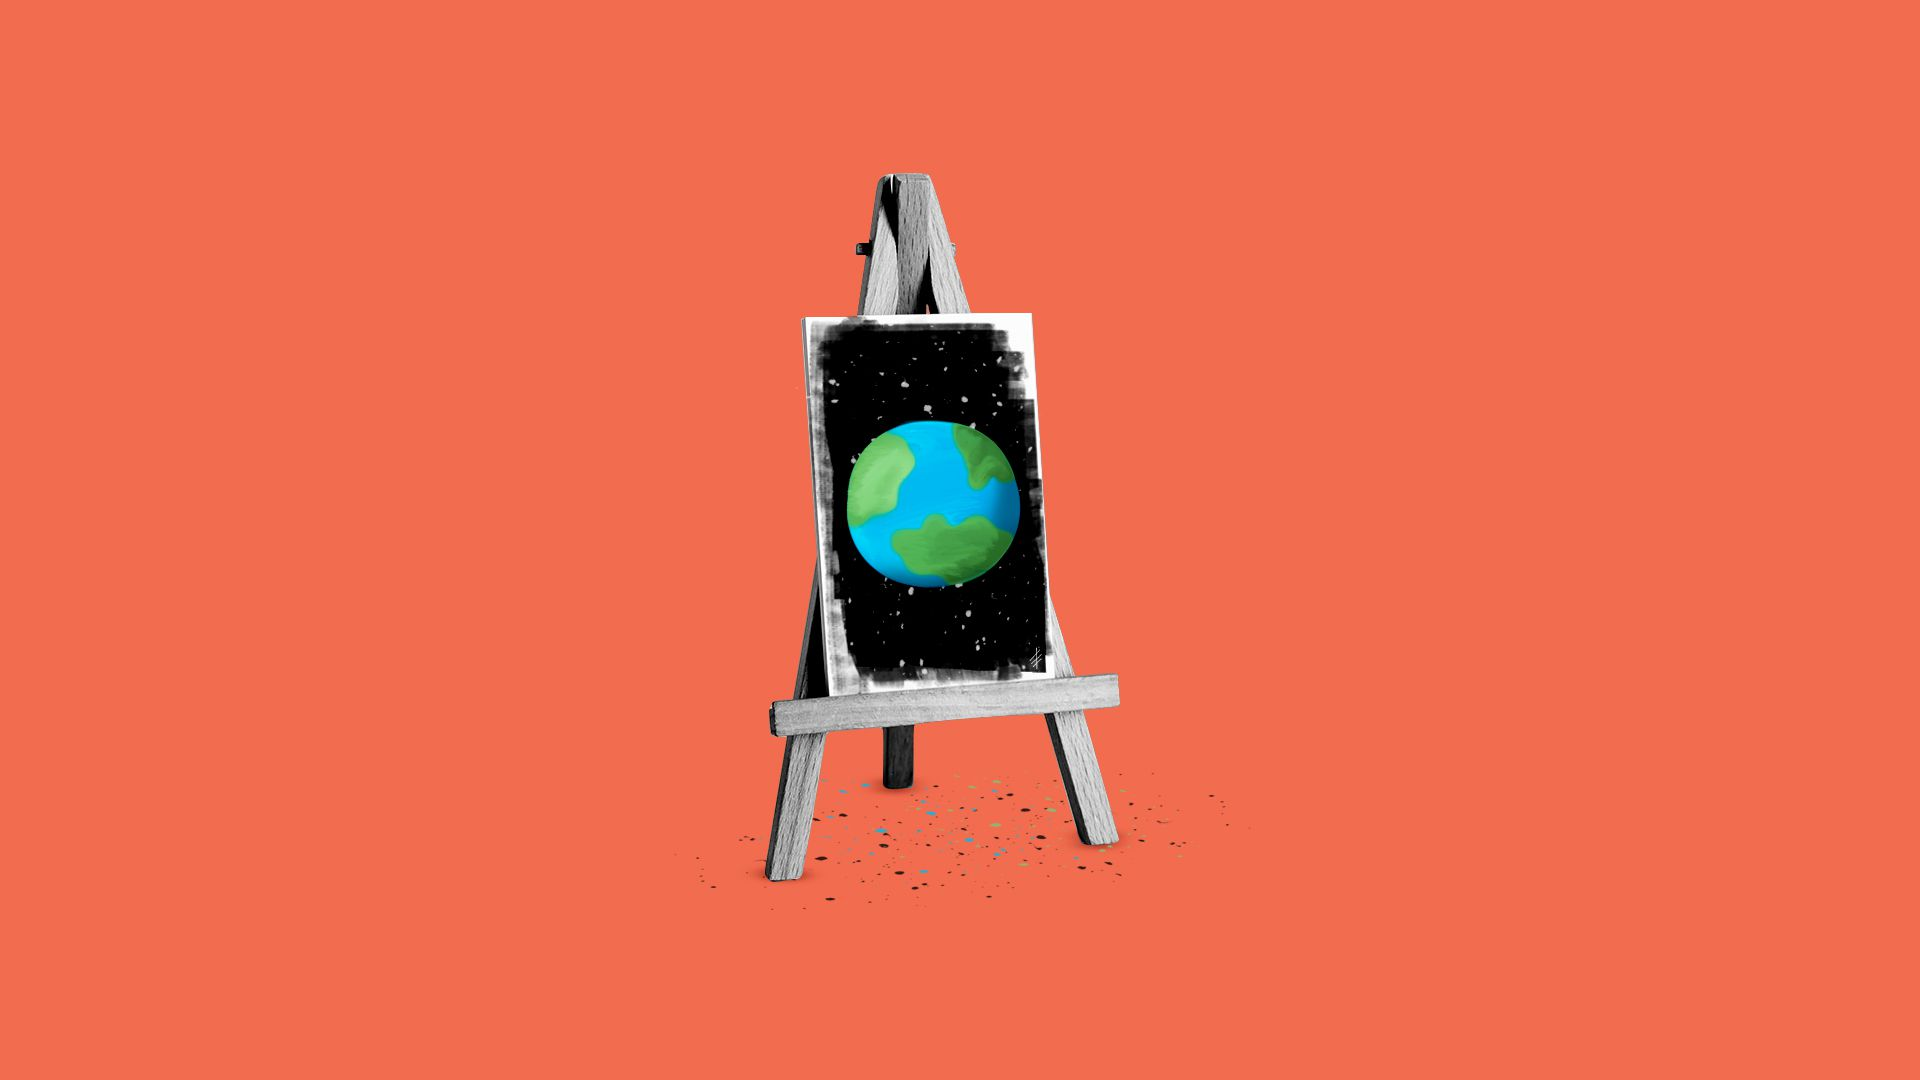 Illustration of a painter's easel showing a painting of an Earth-like planet.